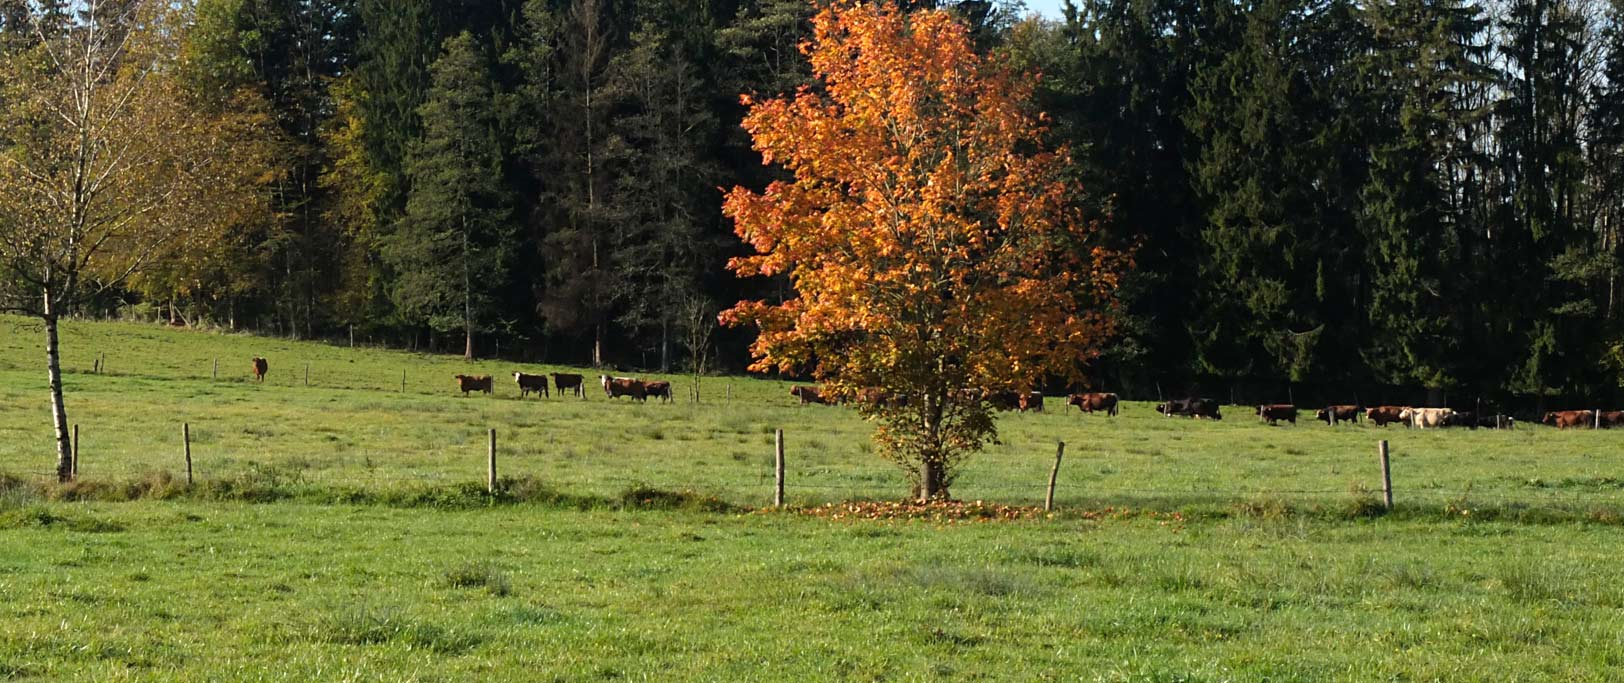 Herbst in Mooseurach